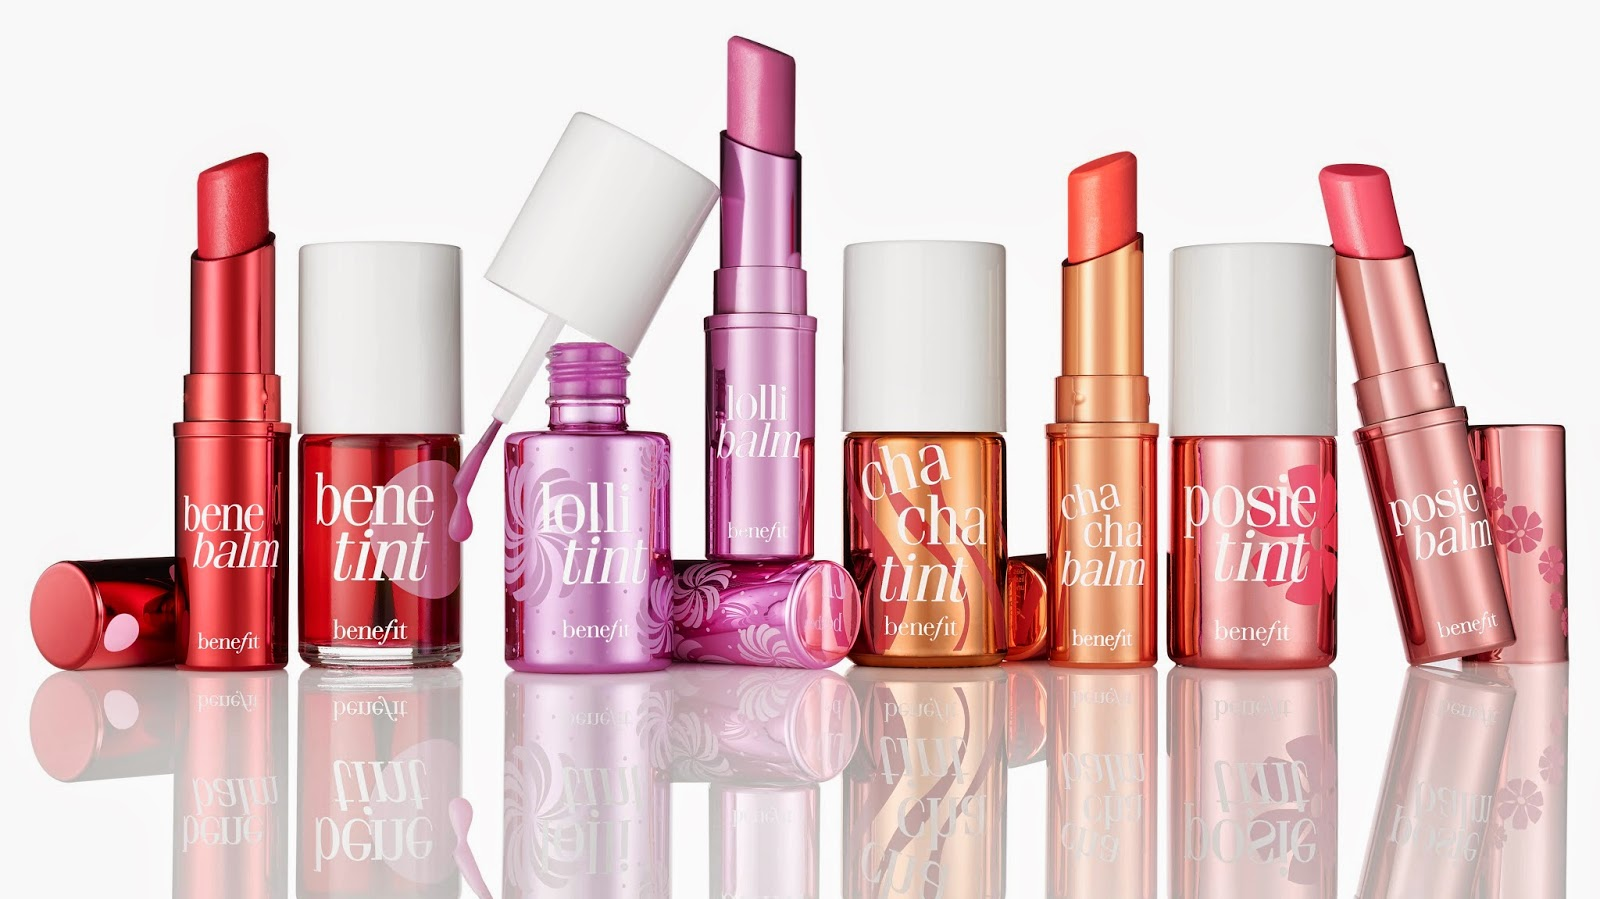 This June Benefit are launching their new hydrating lip balms to sit